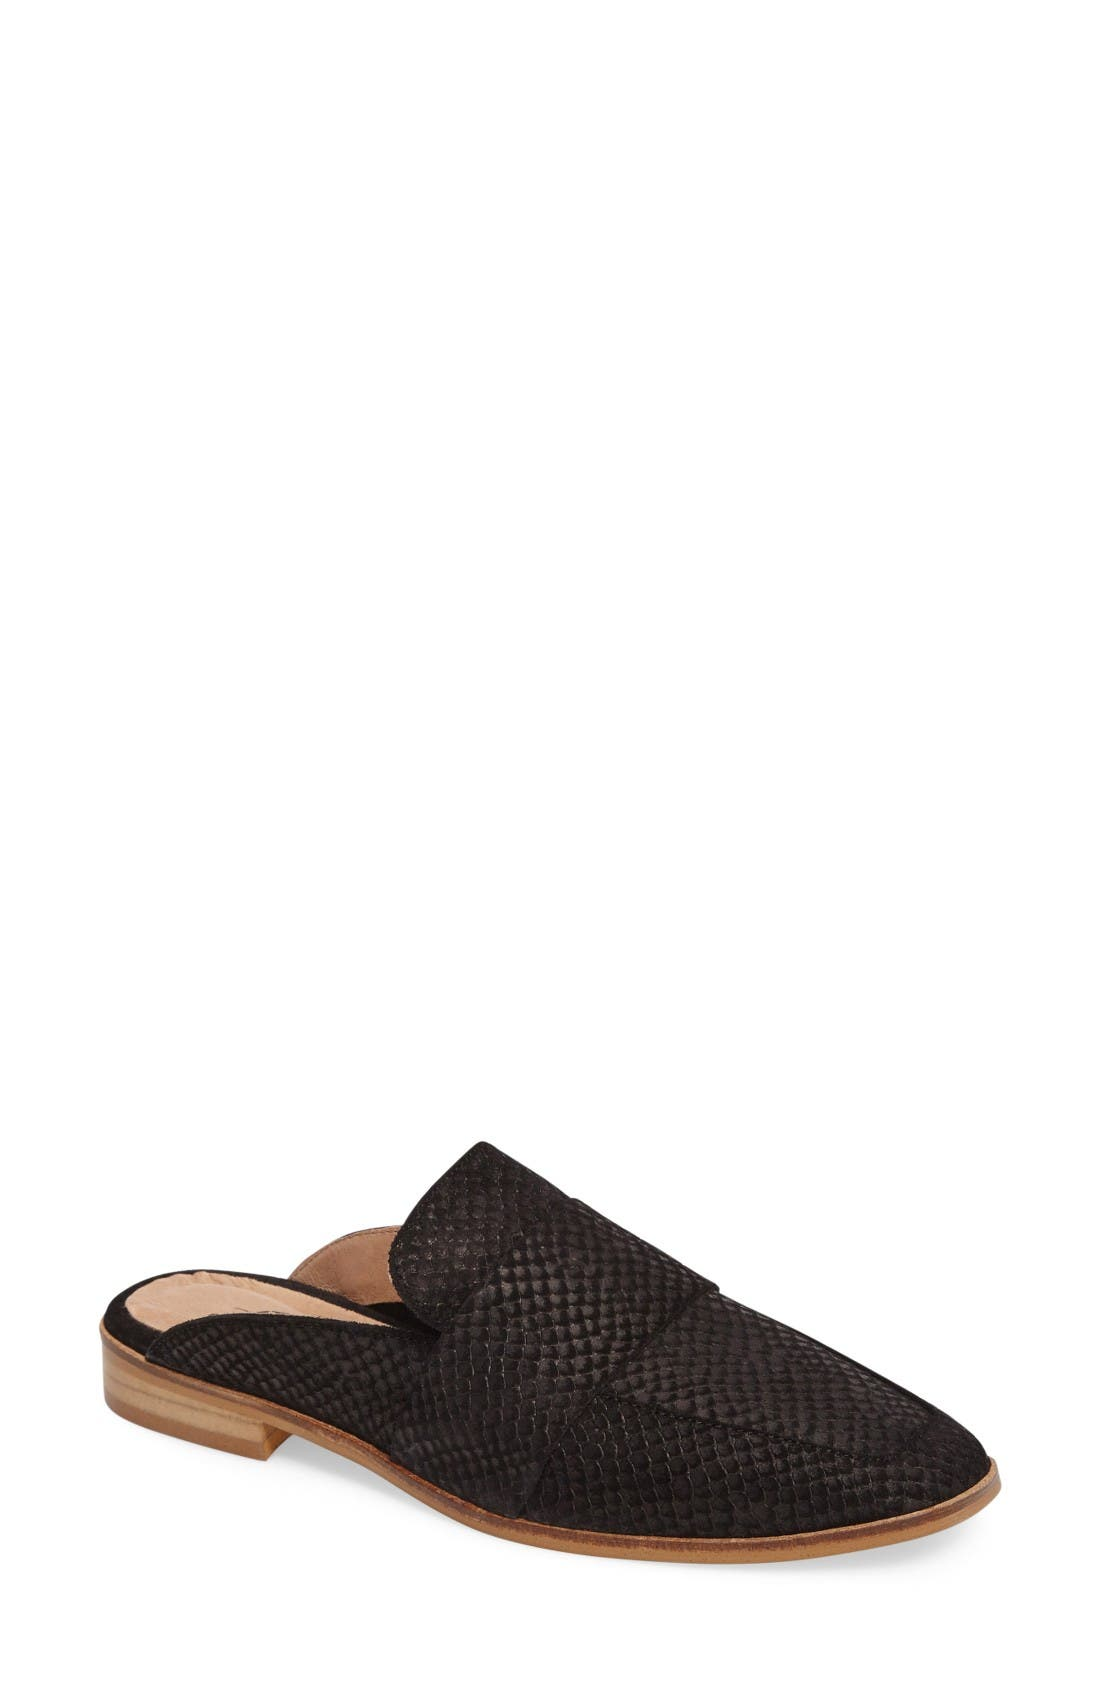 At Ease Loafer Mule,                             Main thumbnail 1, color,                             Black Leather